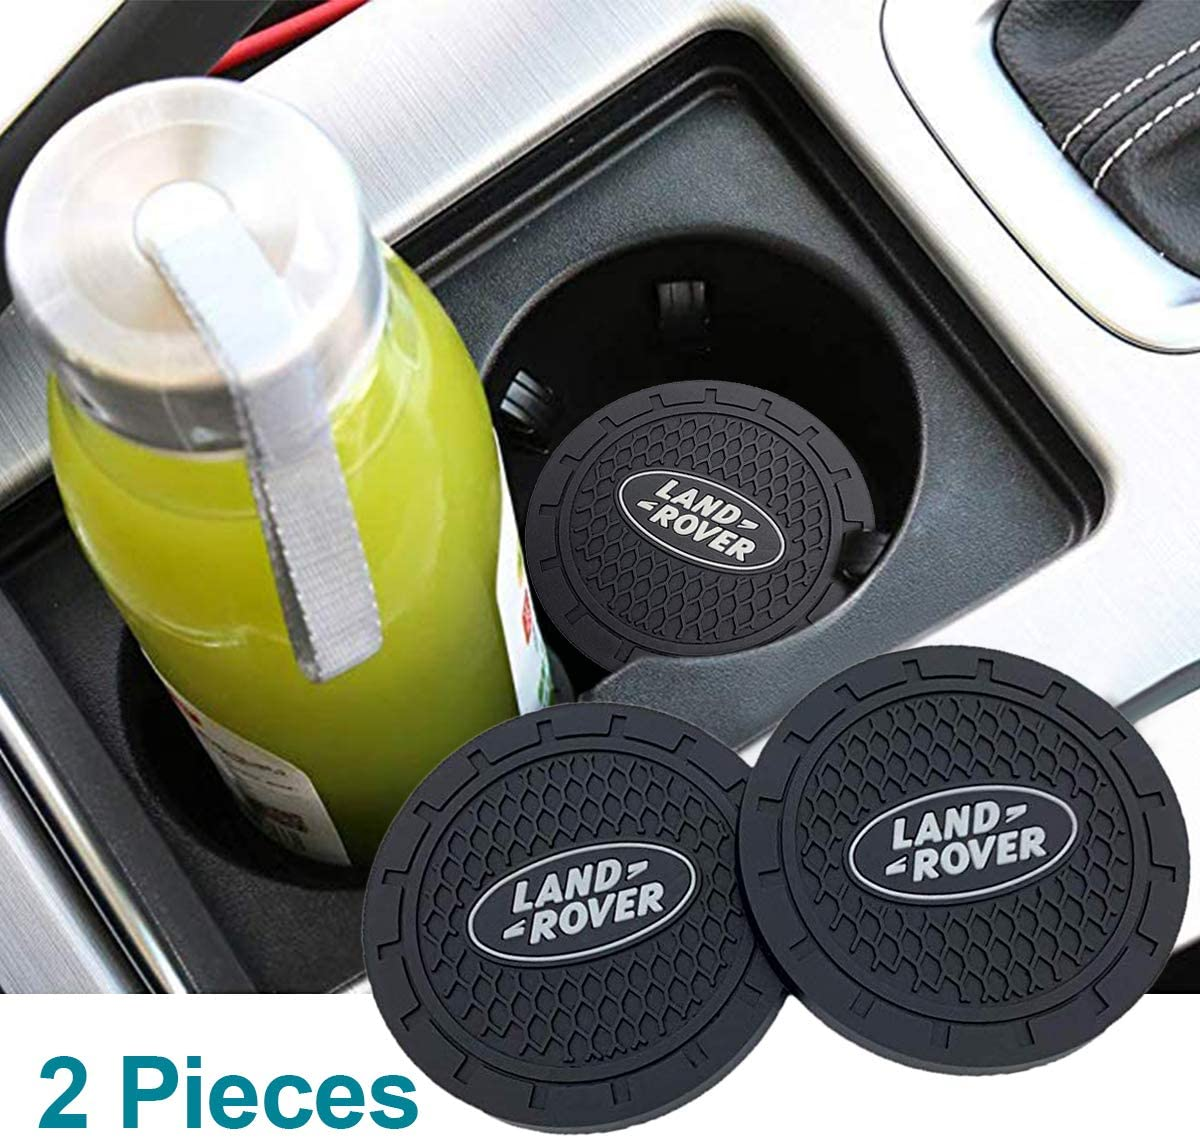 monochef Auto Sport 2.75 Inch Diameter Oval Tough Car Logo Vehicle Travel Auto Cup Holder Insert Coaster Can 2 Pcs Pack (Fit Land Ro ver)